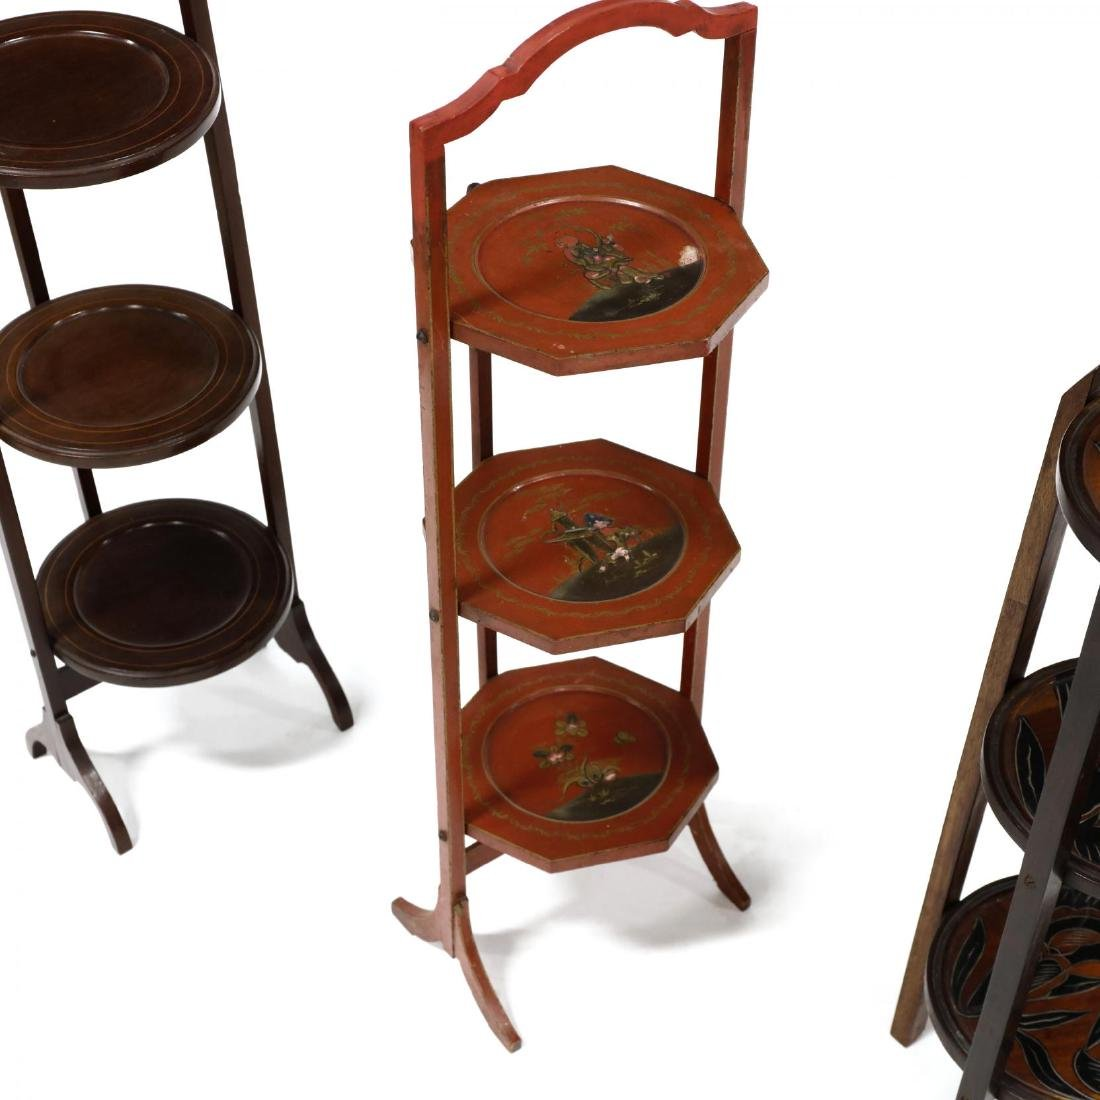 Four Vintage Muffin Stands - 4